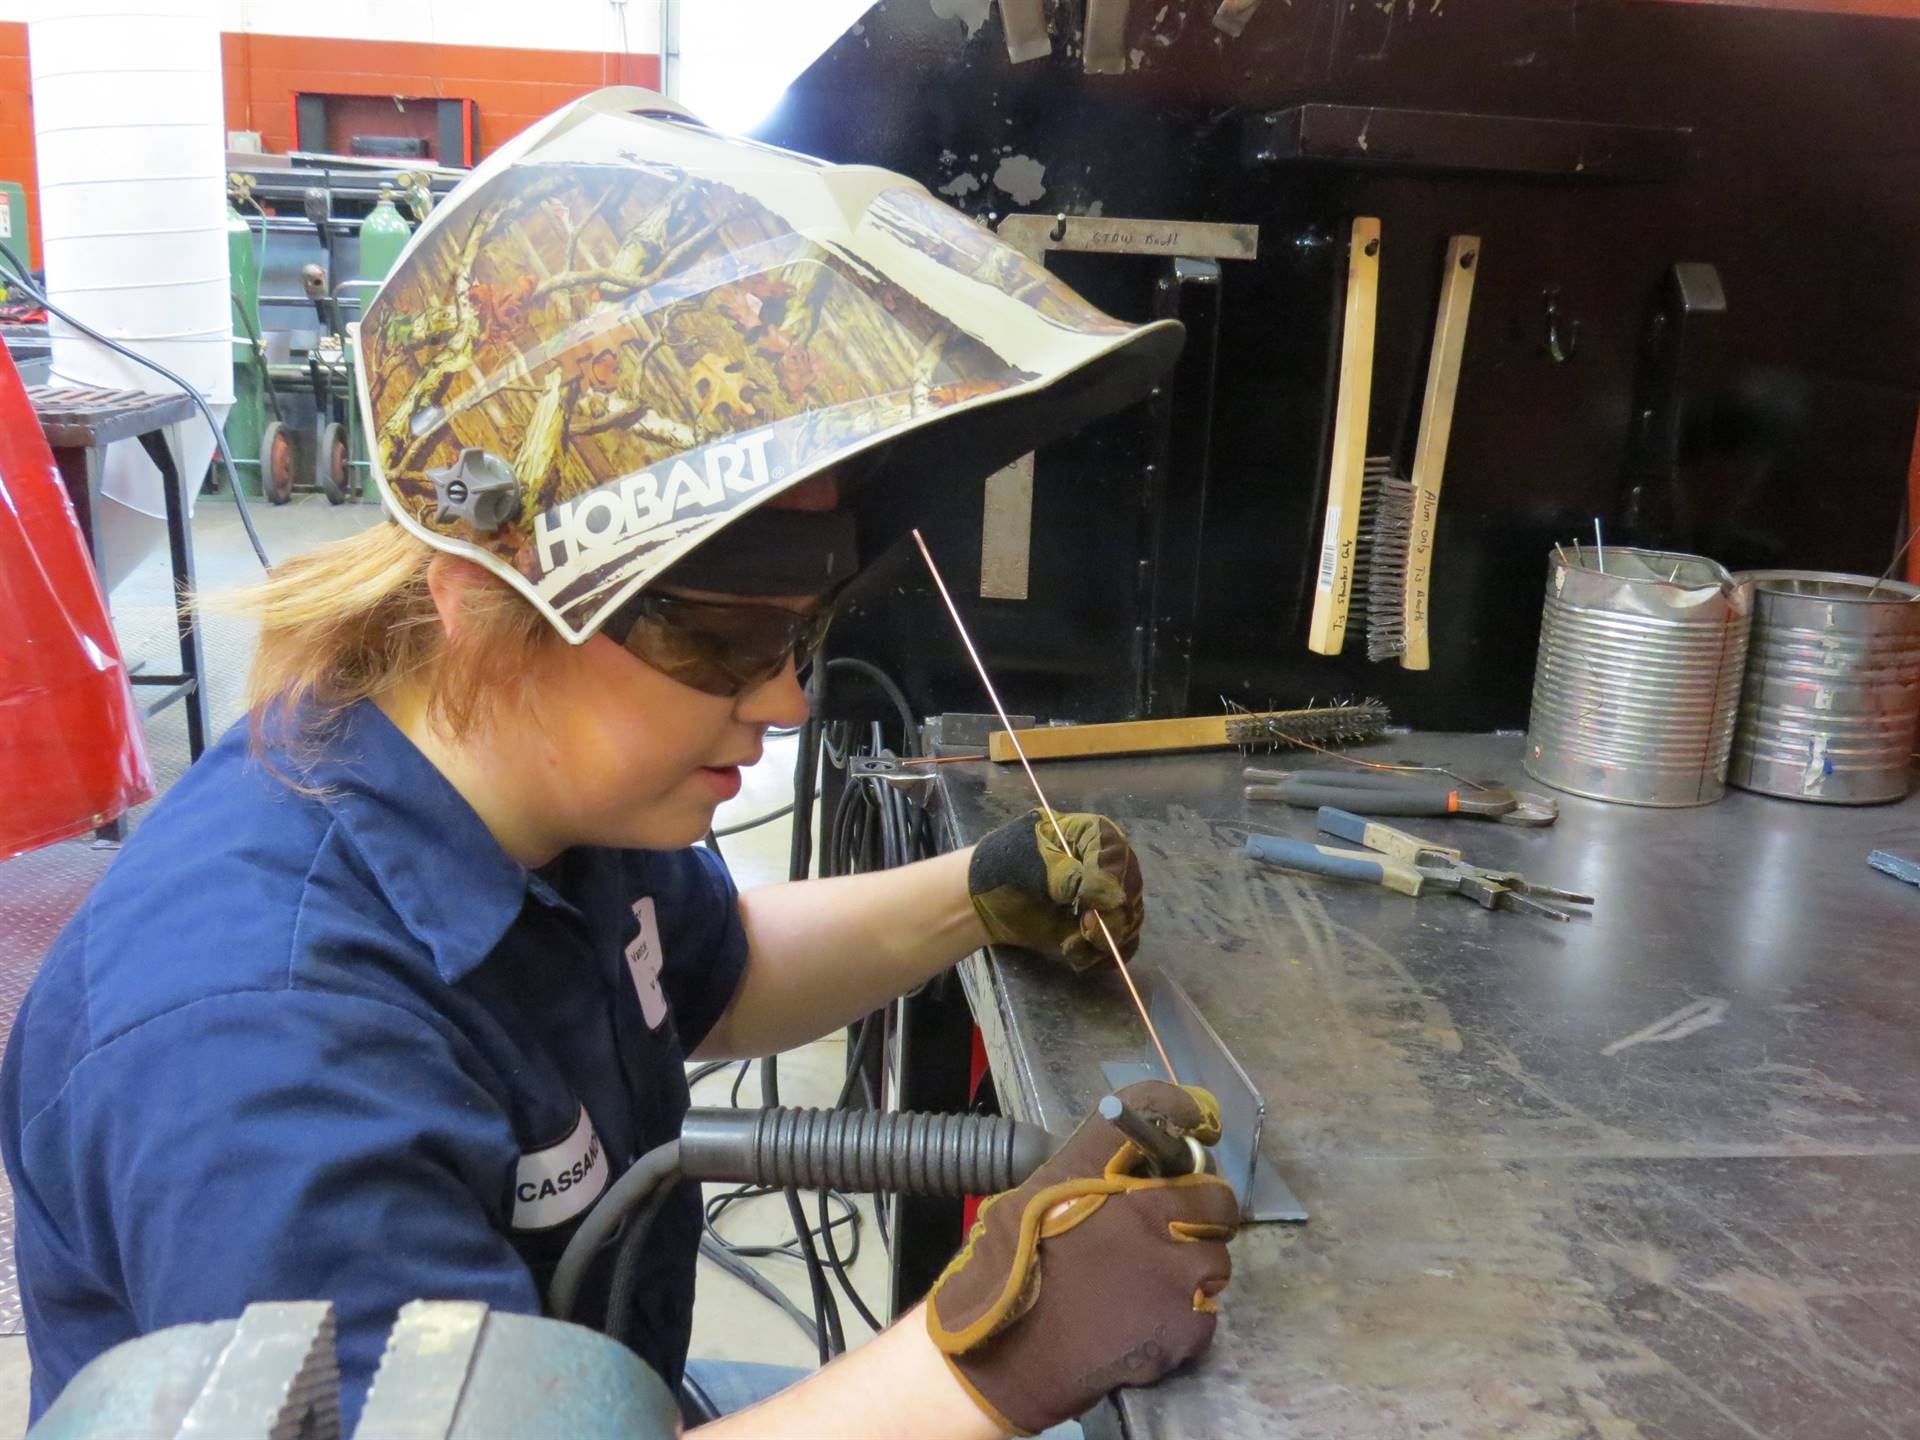 Female Welding student in camouflage welding helmet preparing to weld